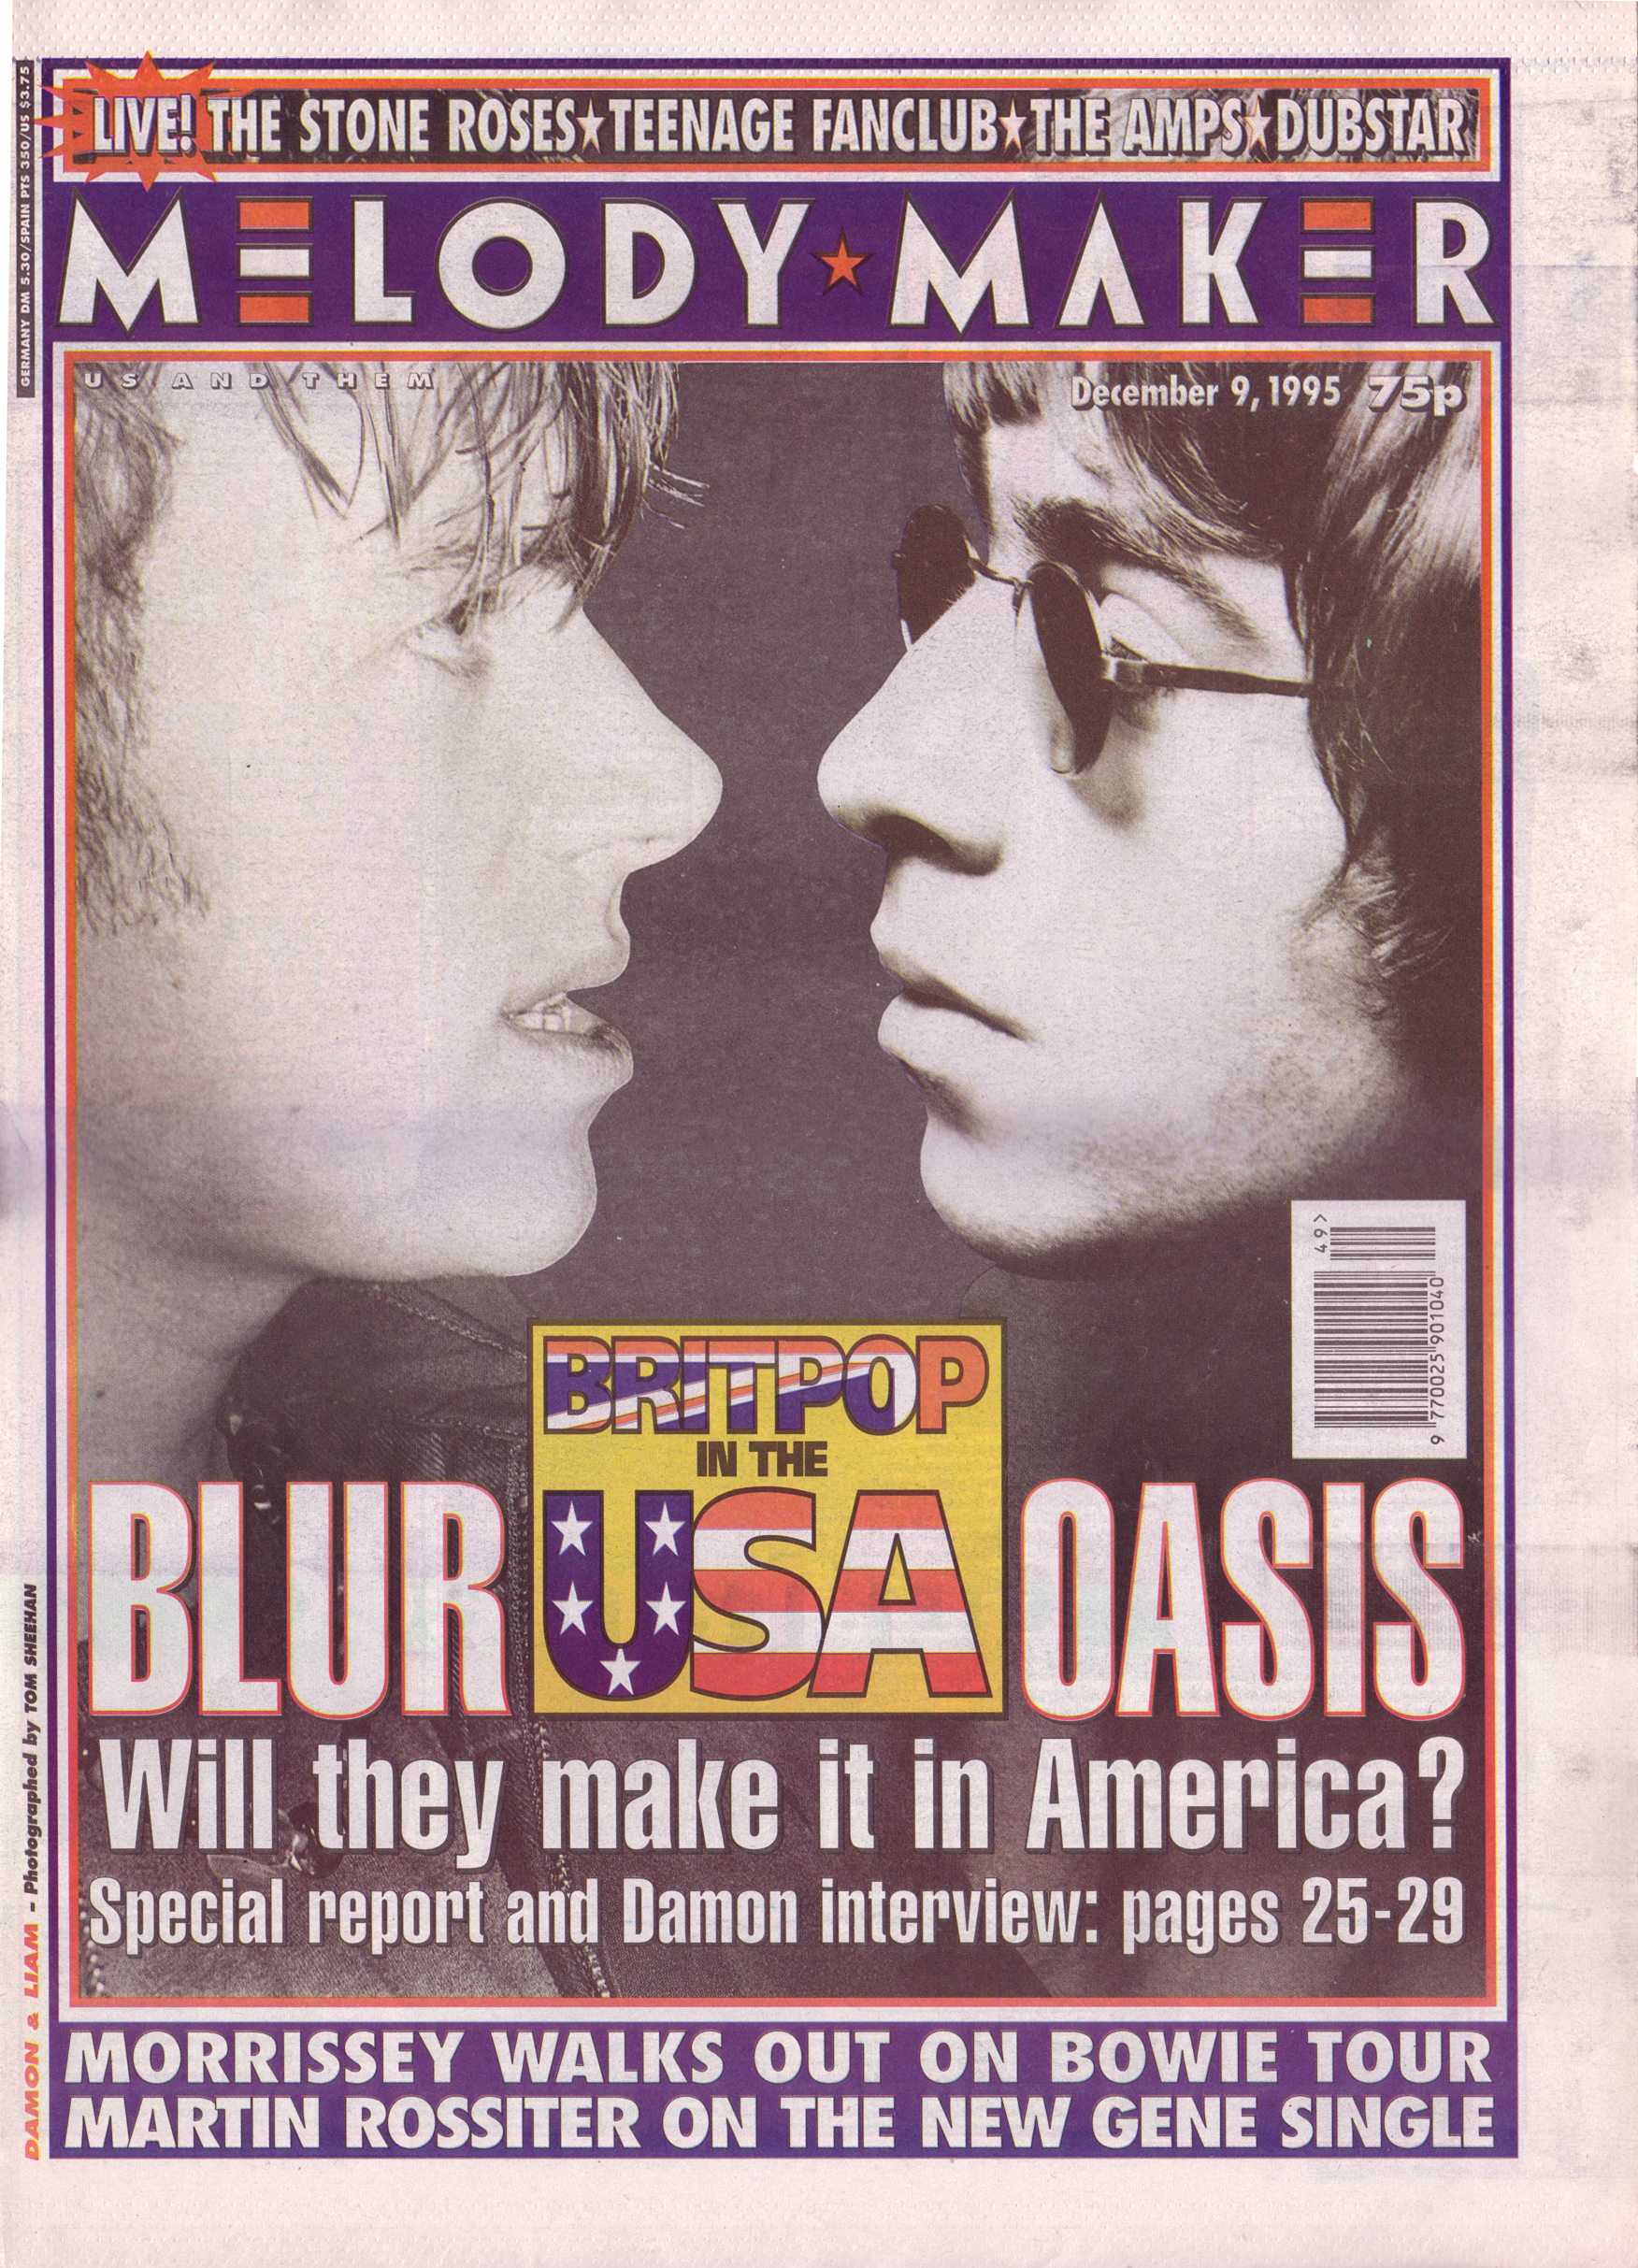 http://archivedmusicpress.files.wordpress.com/2010/03/blur-oasis-on-the-cover-of-melody-maker-9th-december-1995.jpg